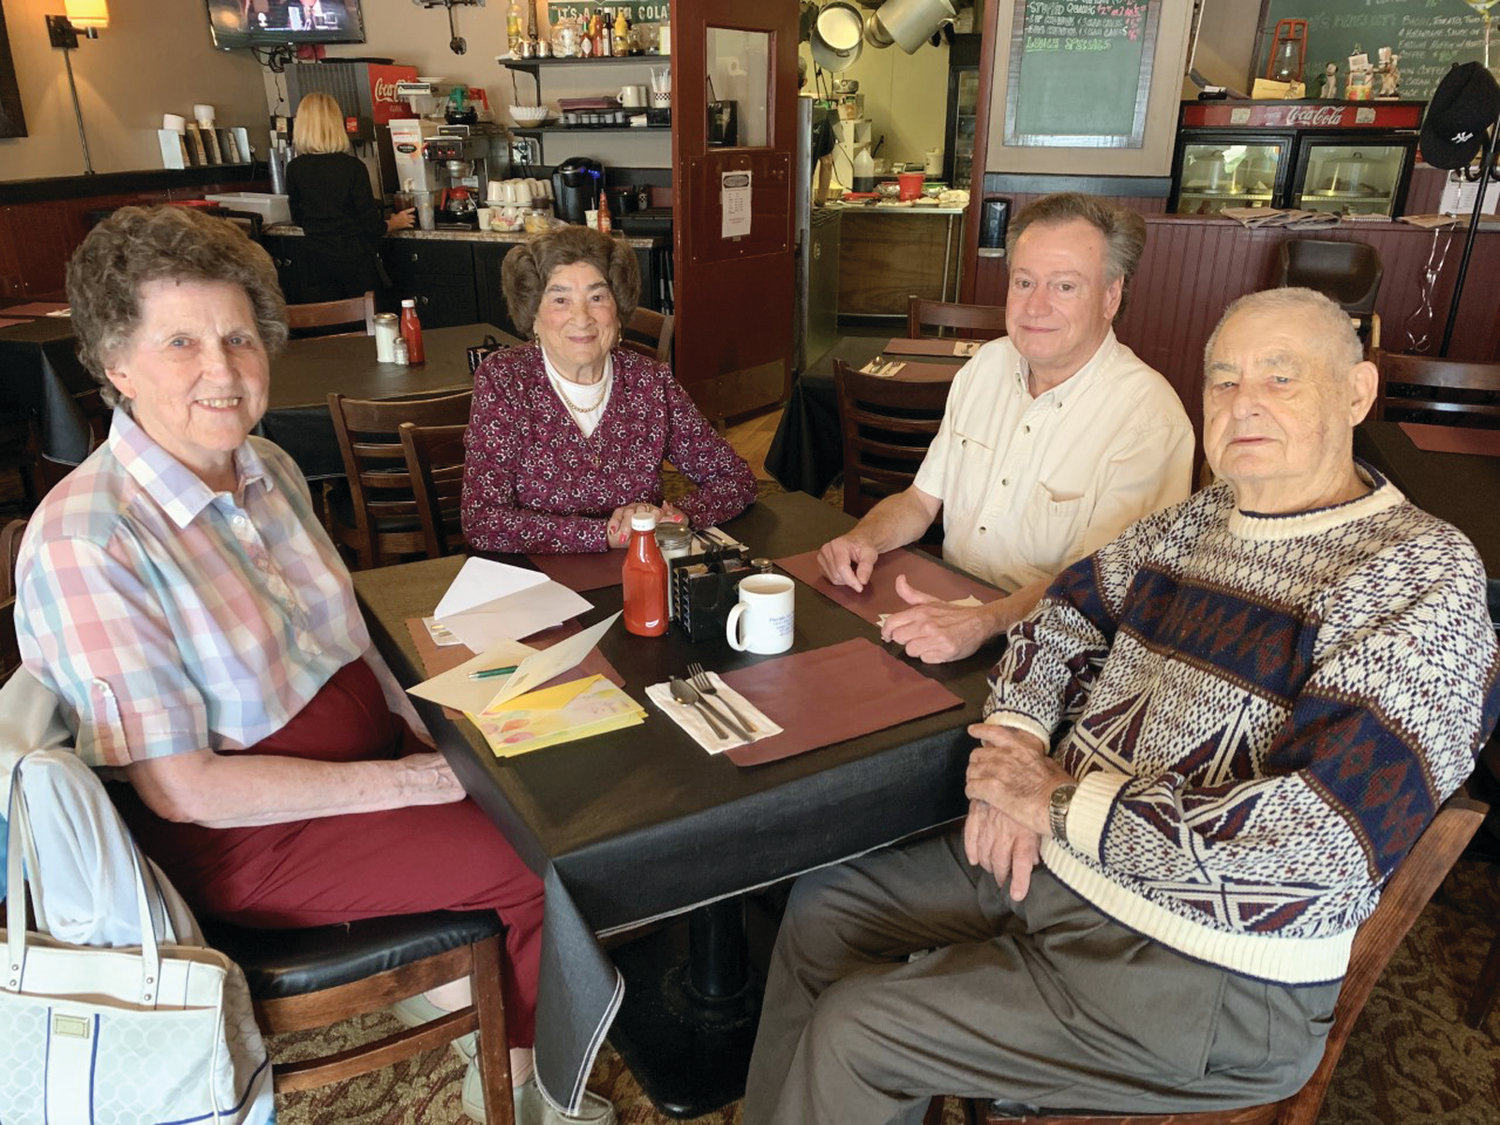 Friends and daily regulars at Buttonwoods 416 on Buttonwoods Avenue in Warwick gather for their daily meal.  Meet (from left to right) Marilyn Colvin, Irma Carolan, Mark Brown and Bob Deady!  Make note that Buttonwoods 416 is now closed on Mondays and Tuesdays!